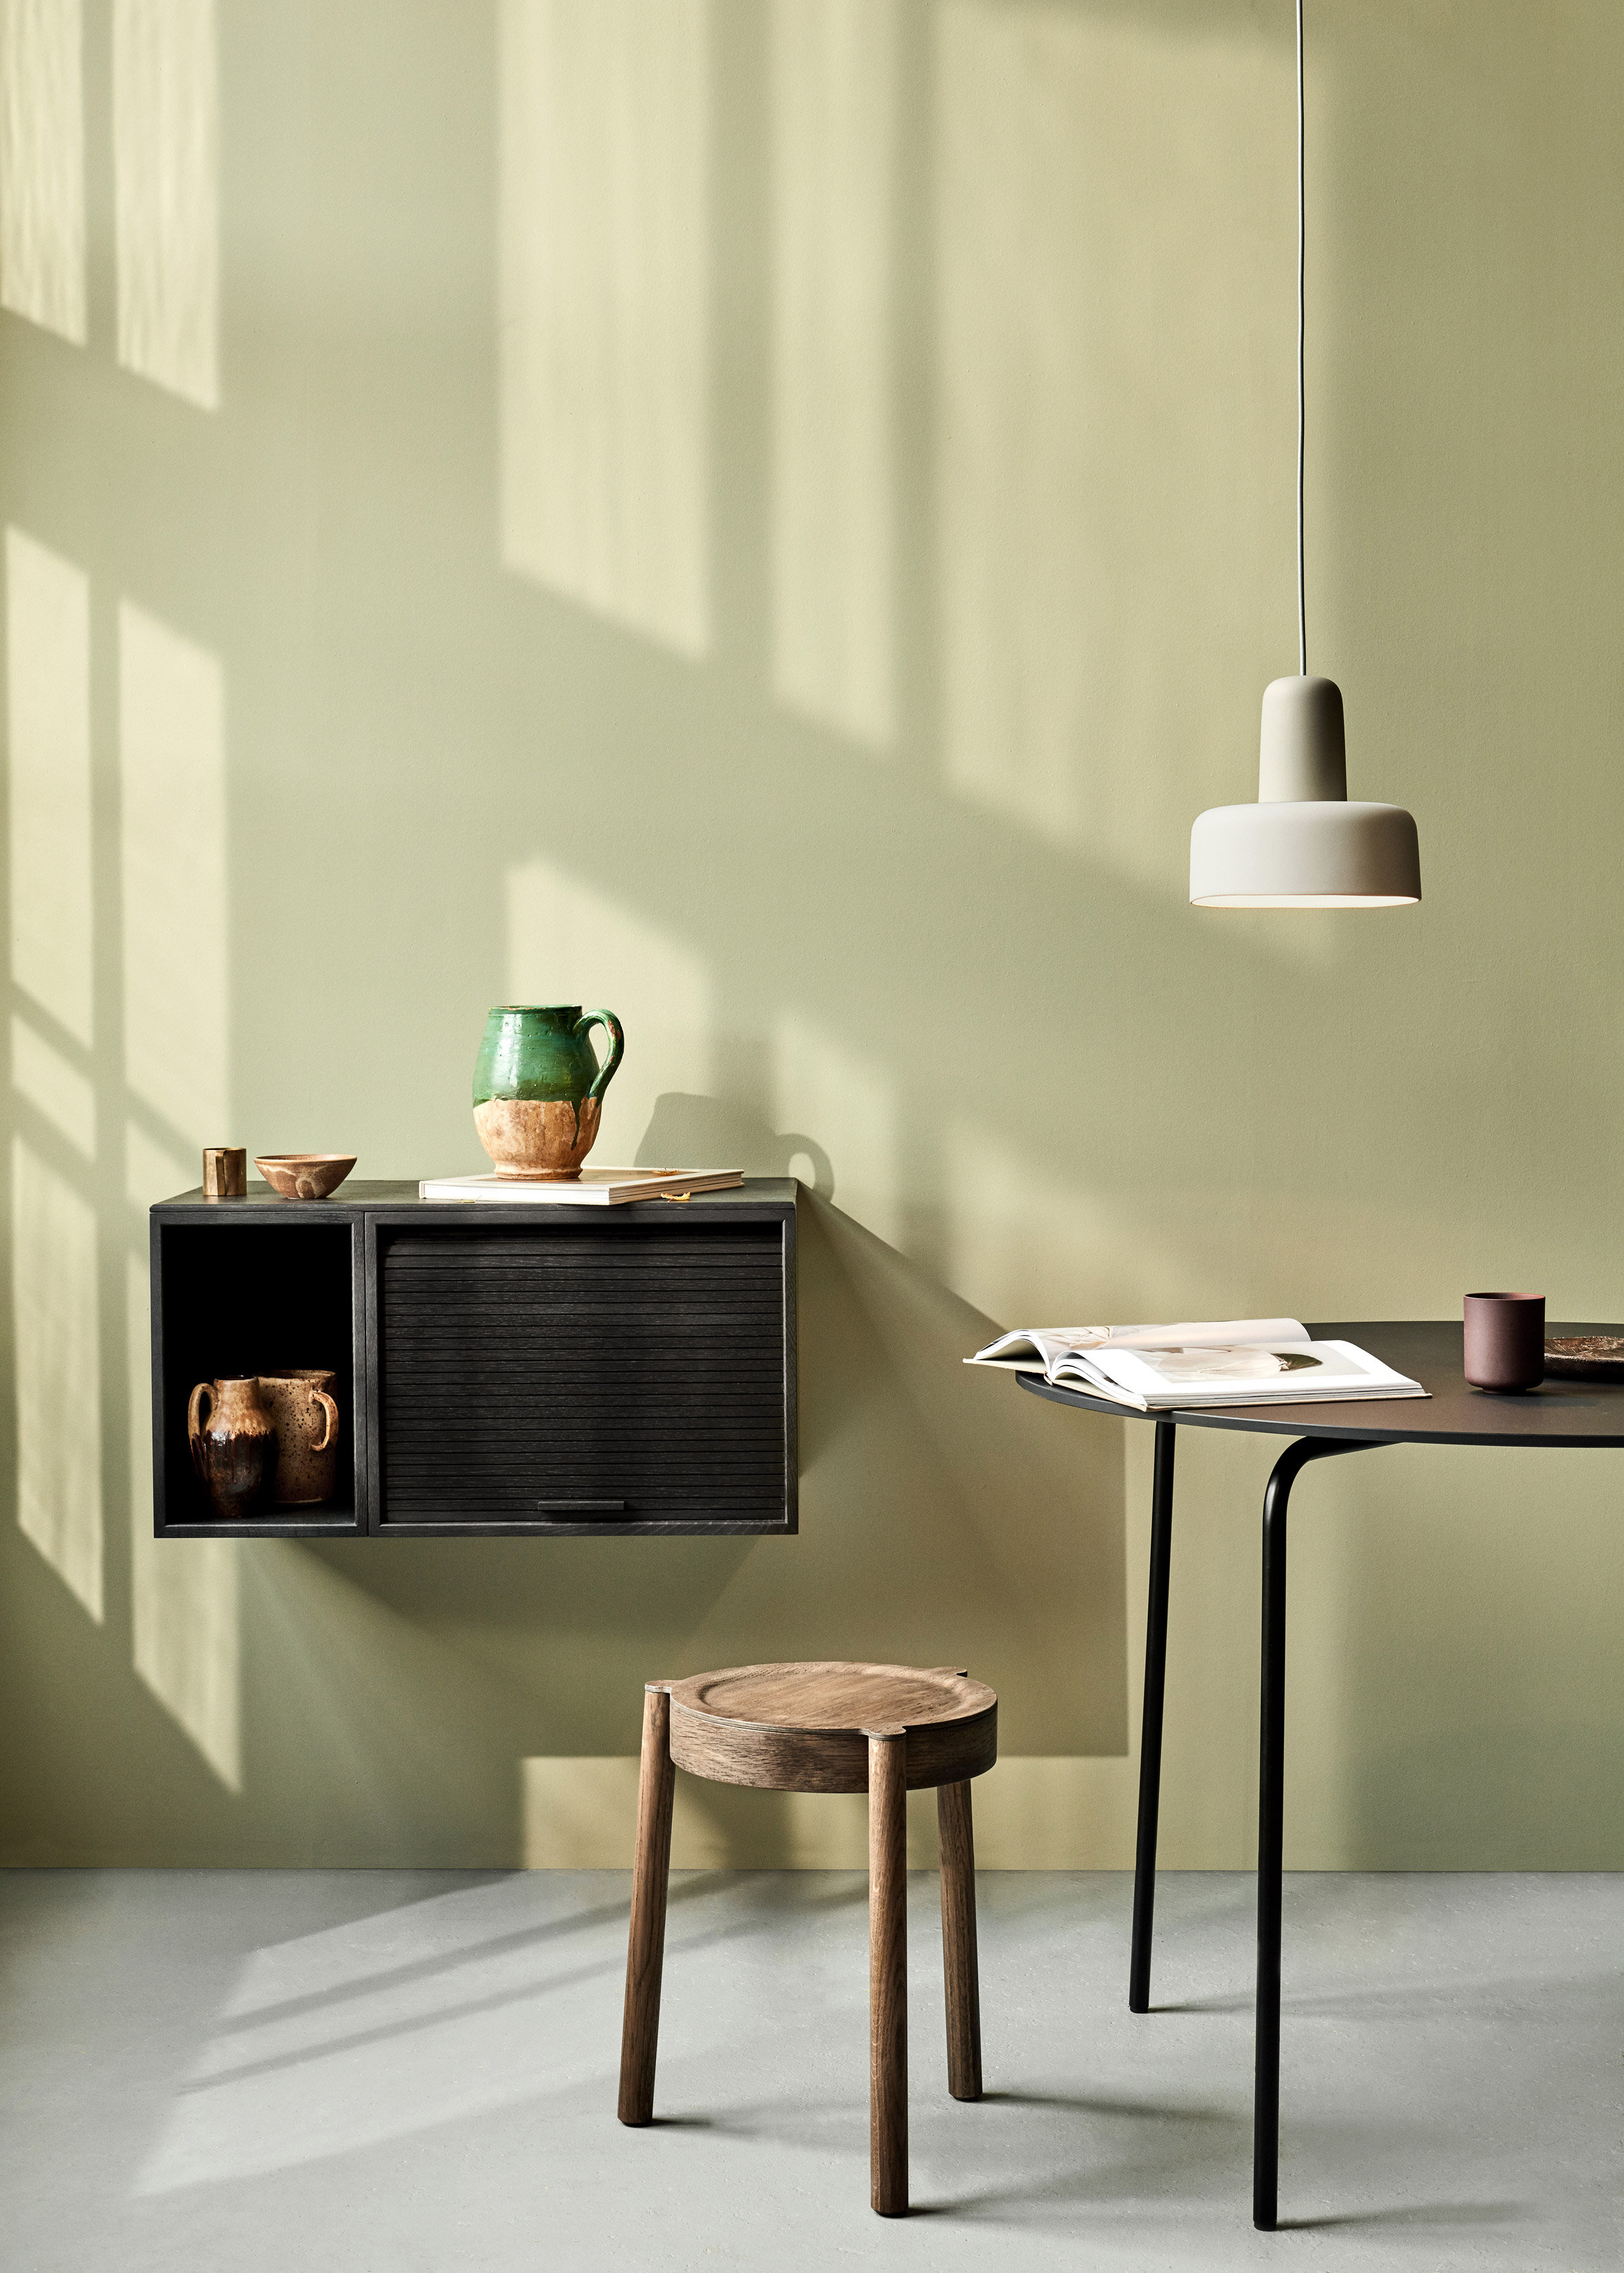 Norwegian lifestyle brand Northern launches first furniture and homeware collection